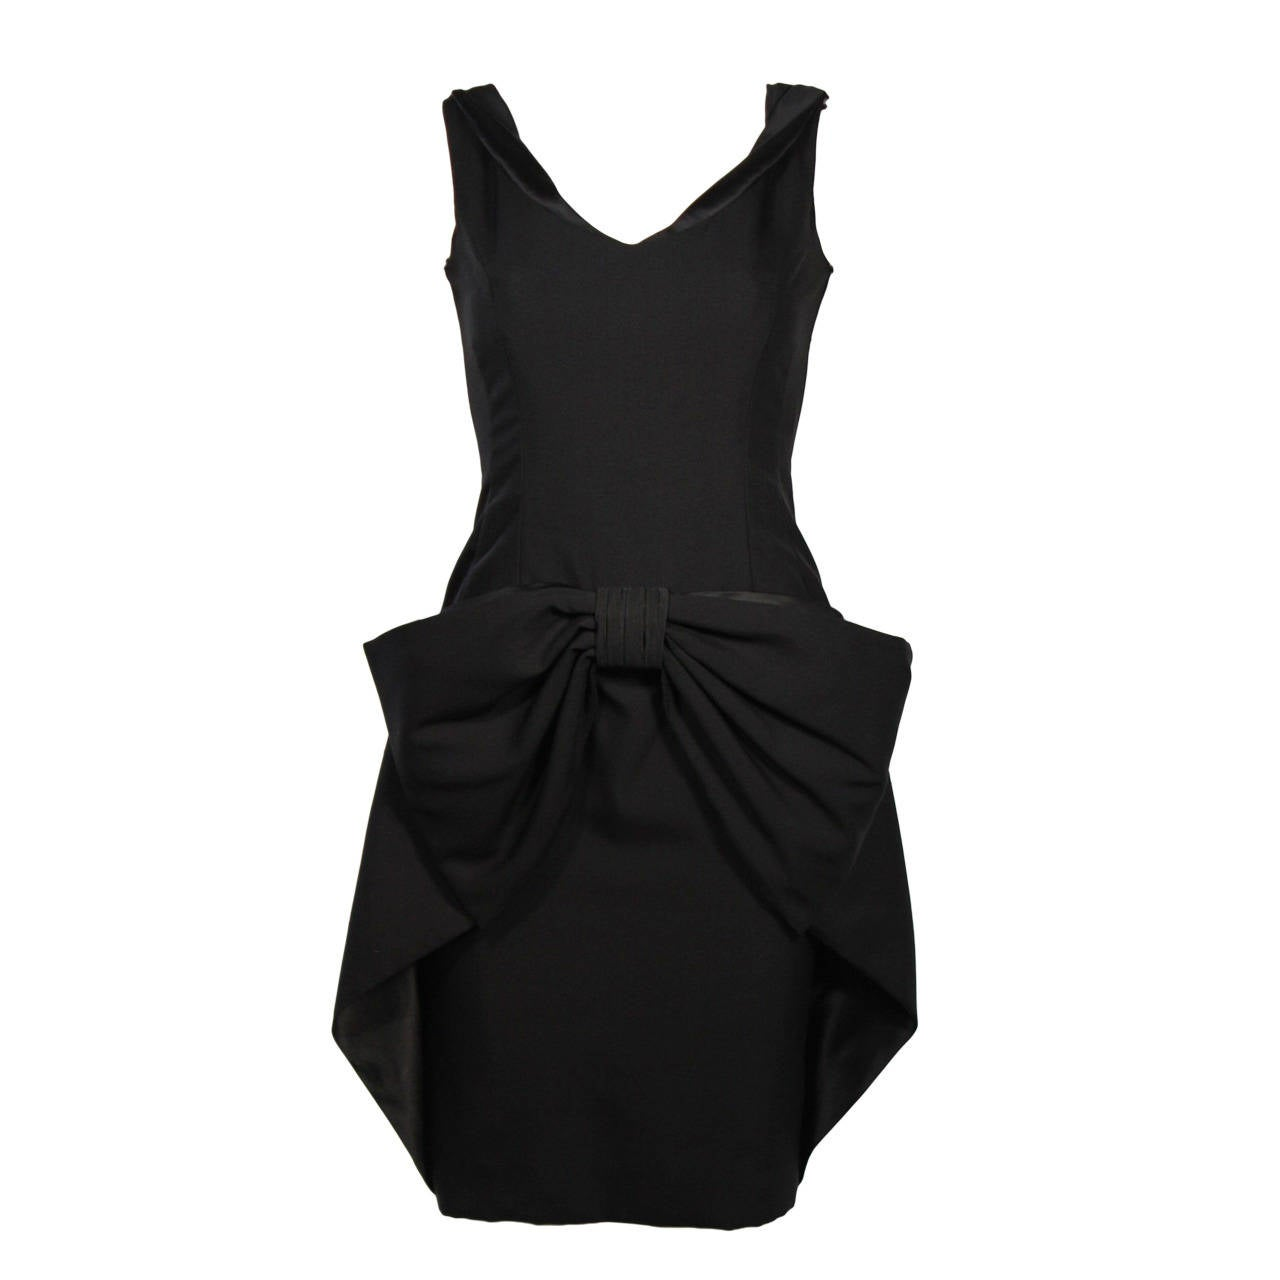 Elizabeth Mason Couture Silk Bow Cocktail Dress Size 2 (or made to measure)